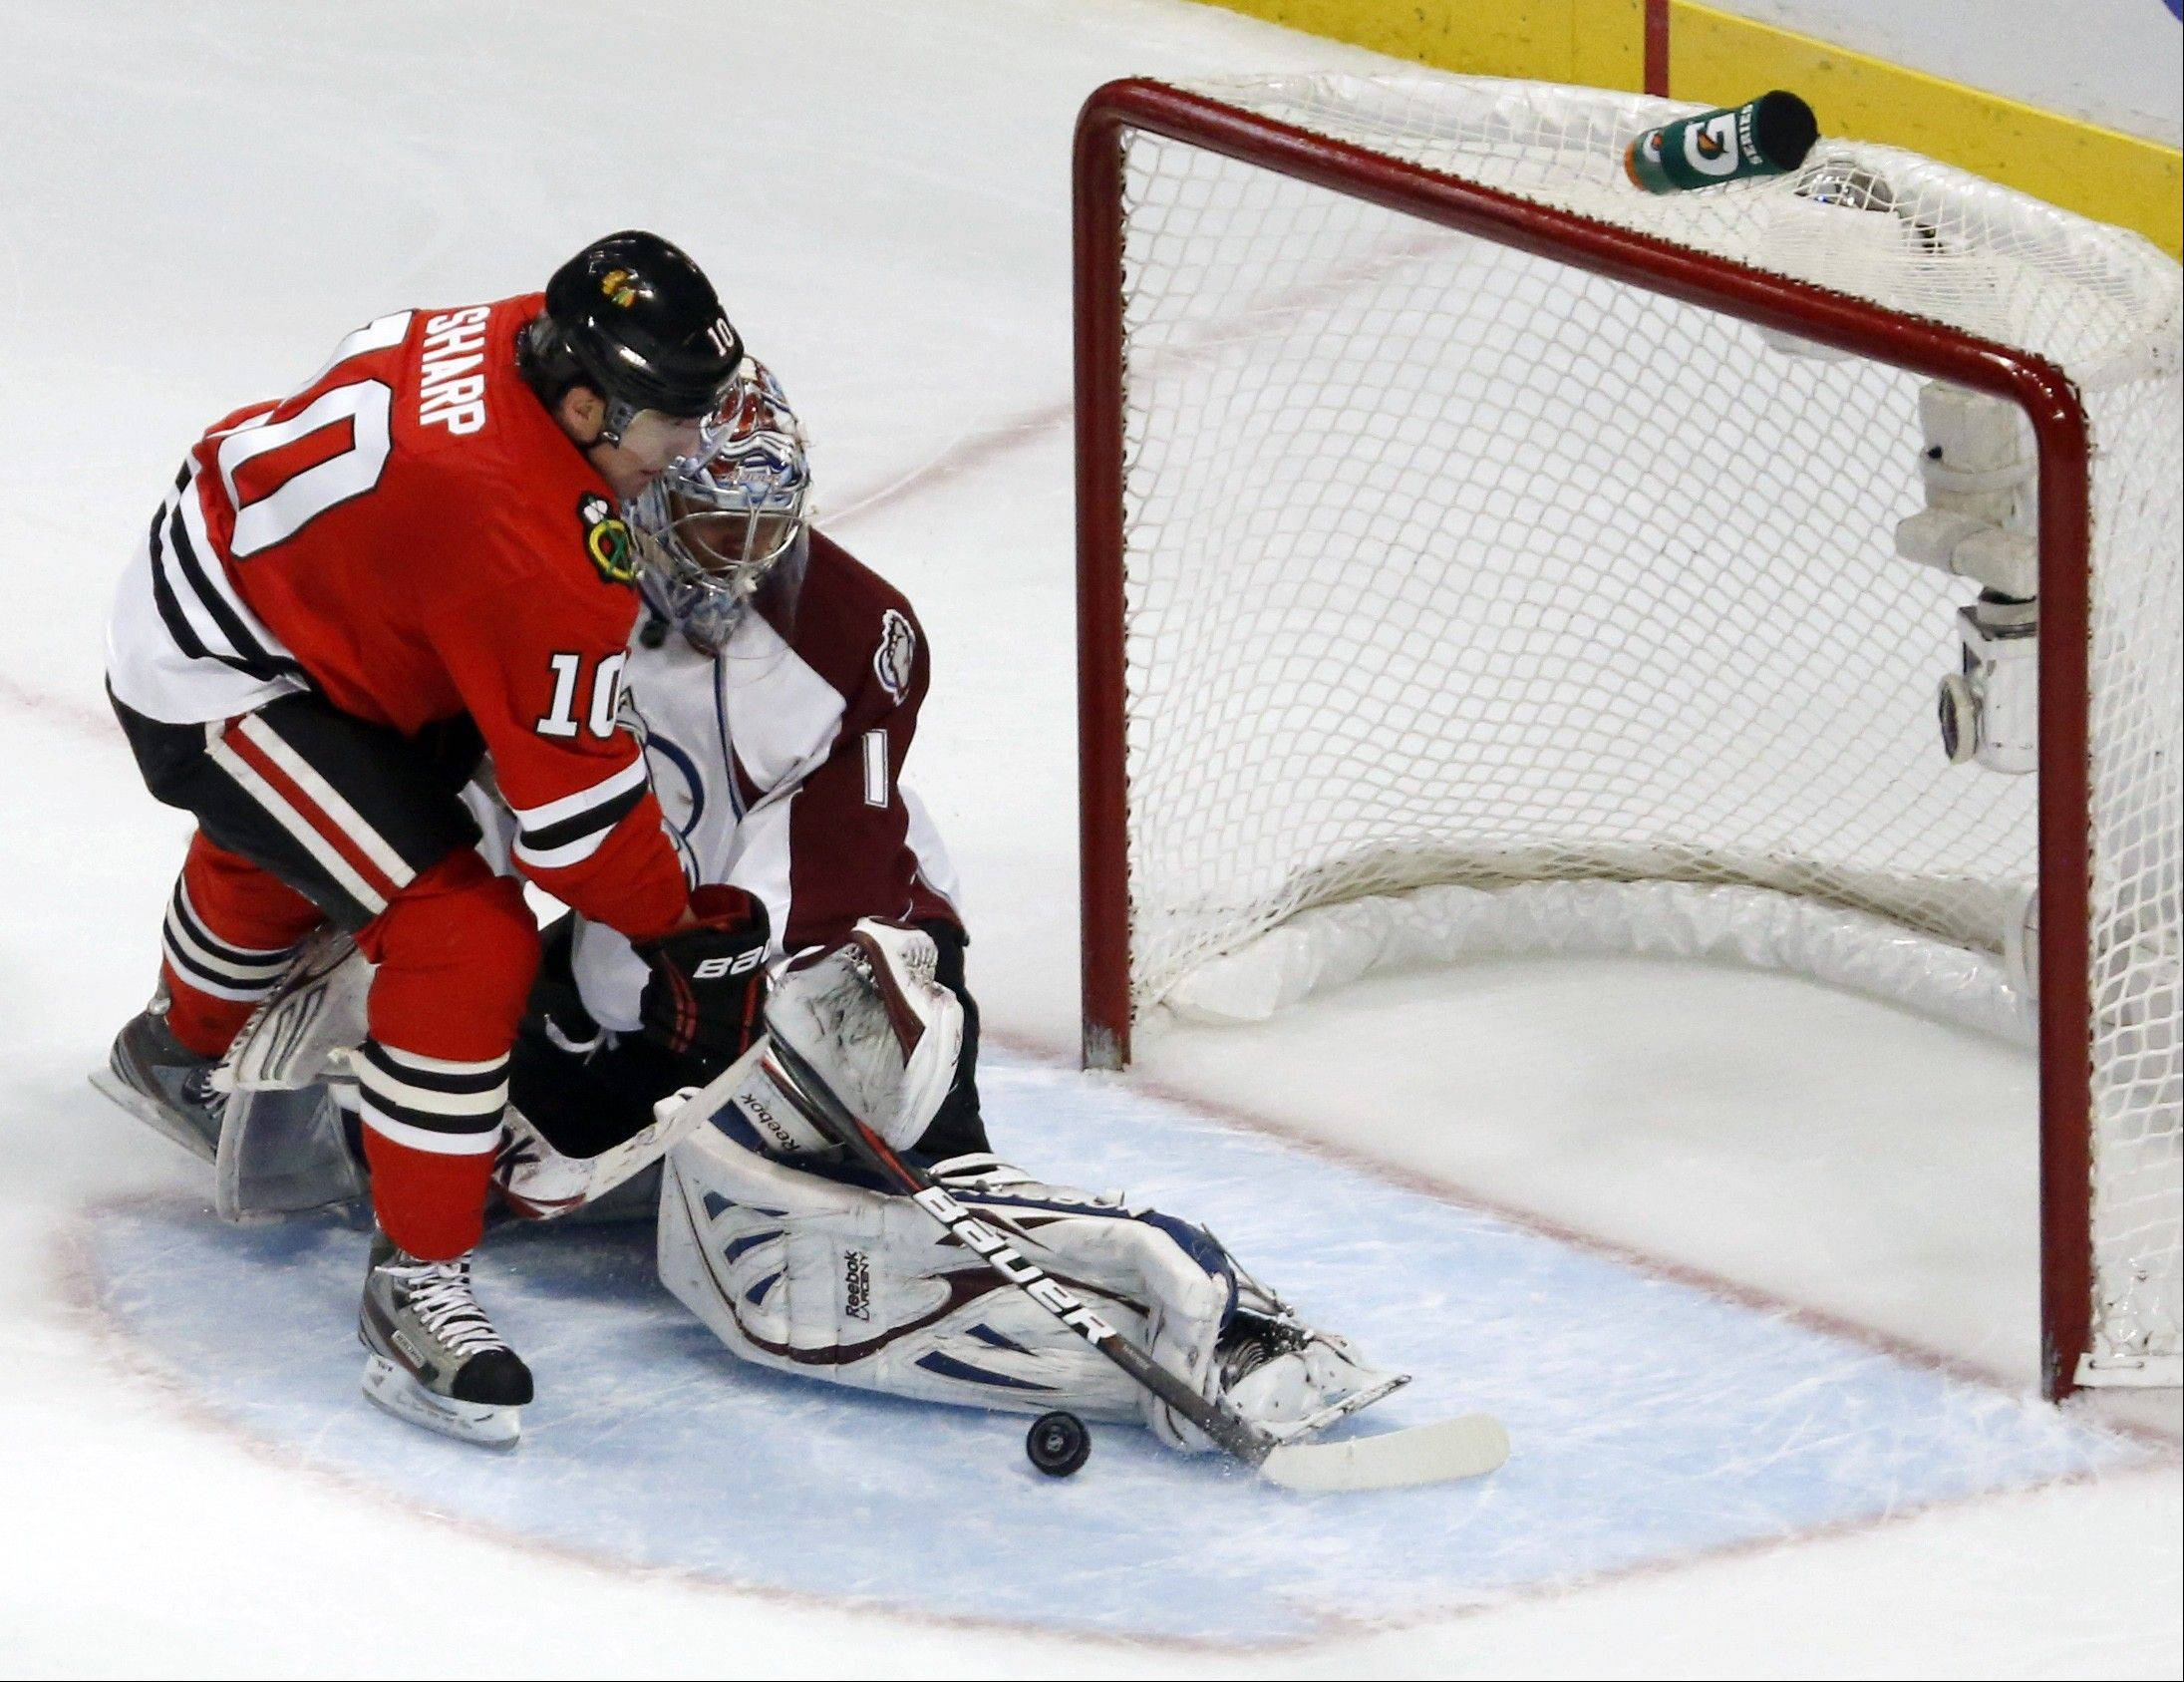 Blackhawks center Patrick Sharp, here taking a shot in Wednesday's game, will not be with the team for Friday's game in Colorado. Sharp left Wednesday's contest with an injury.